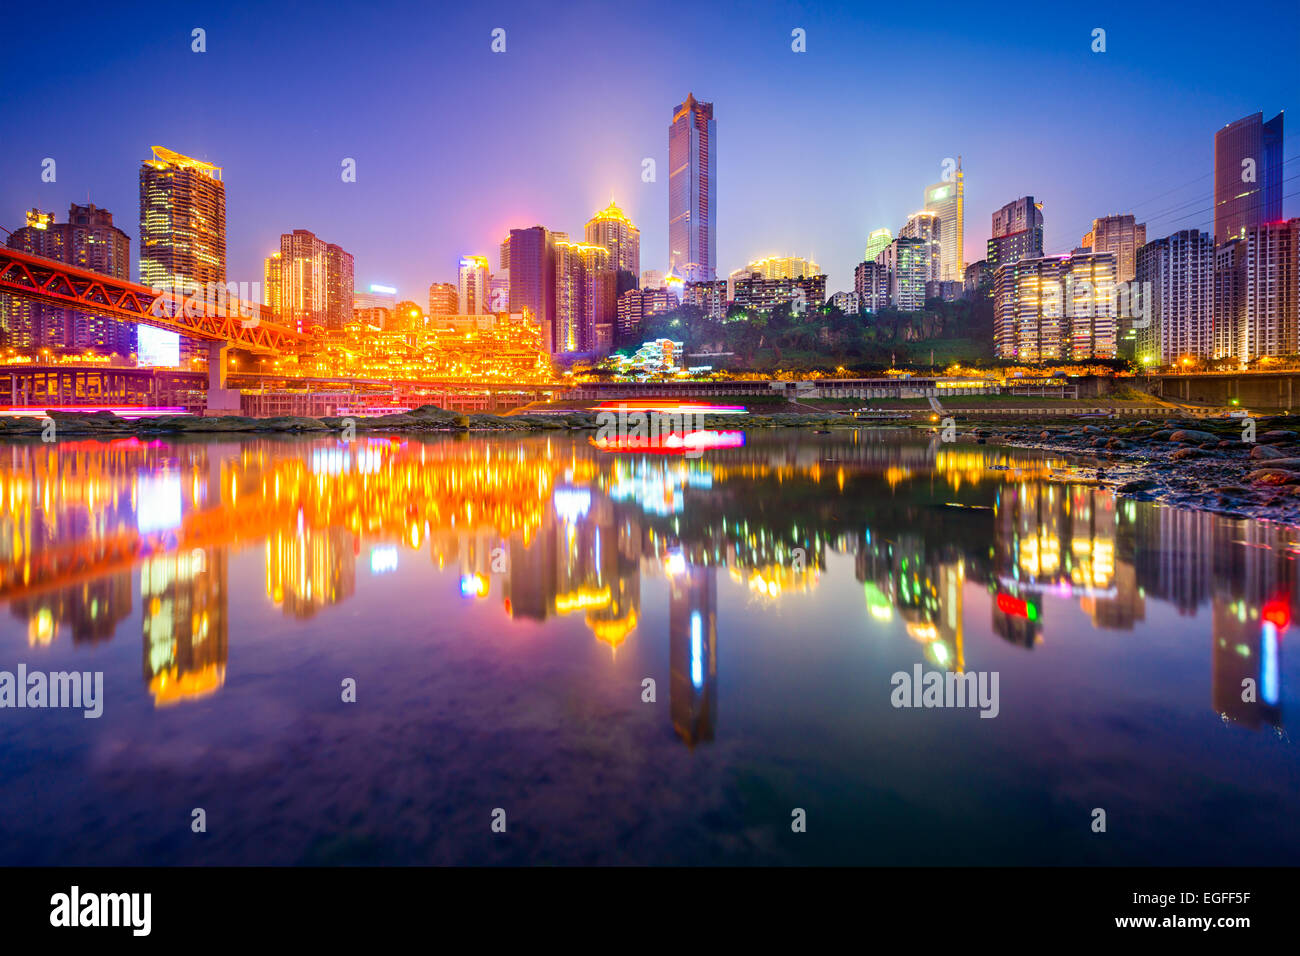 Chongqing, China riverside cityscape at night on the Jialing River. - Stock Image